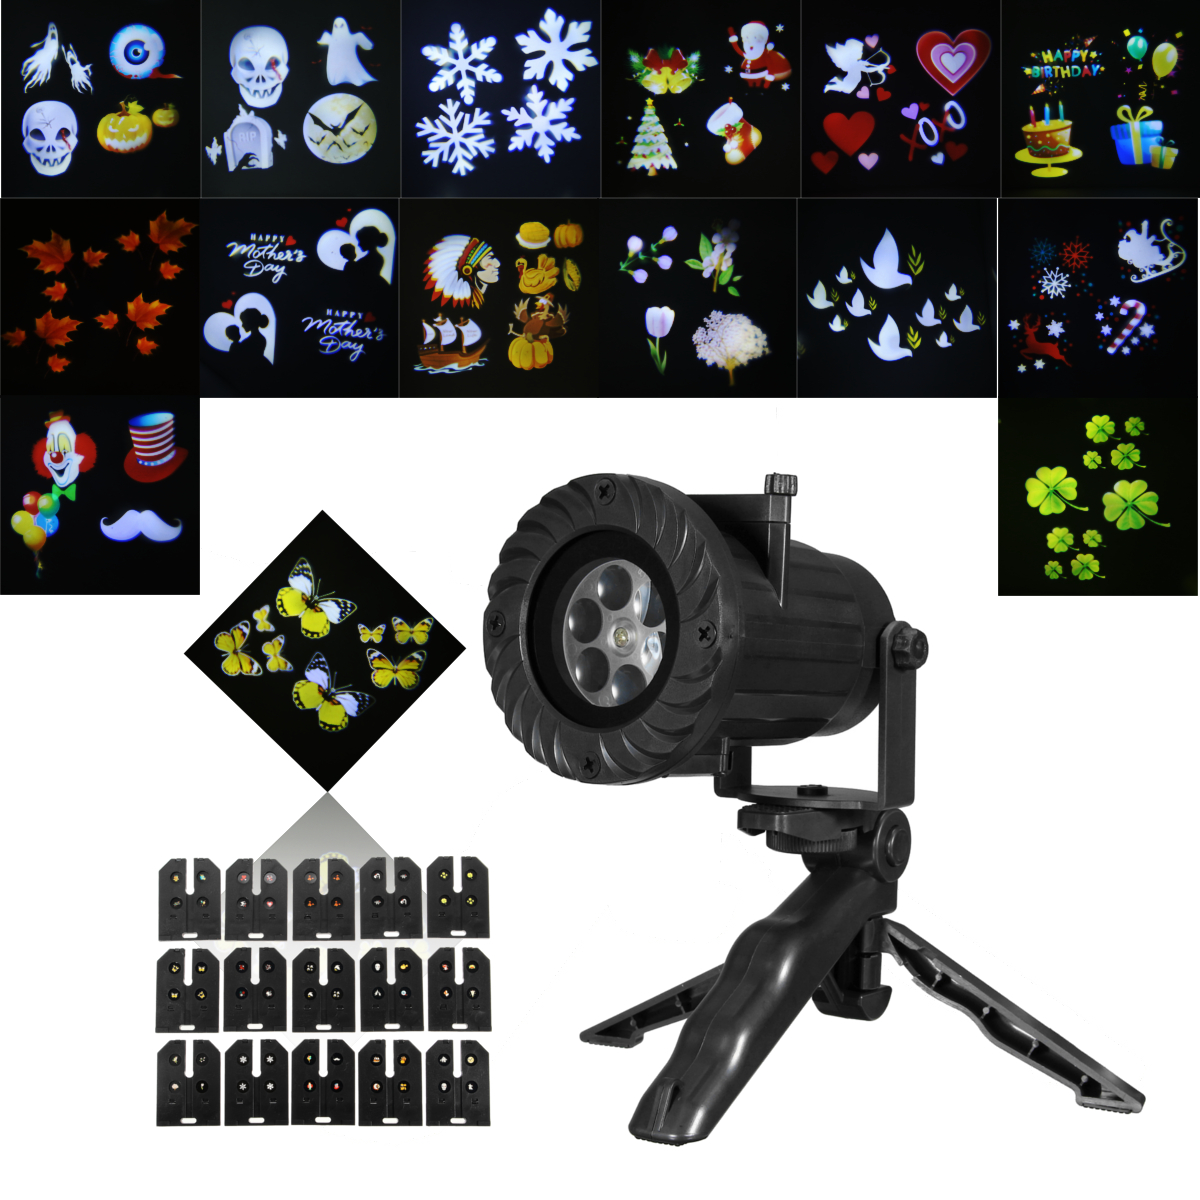 15 Patterns LED Projector Stage Light Party KTV DJ Disco with Remote